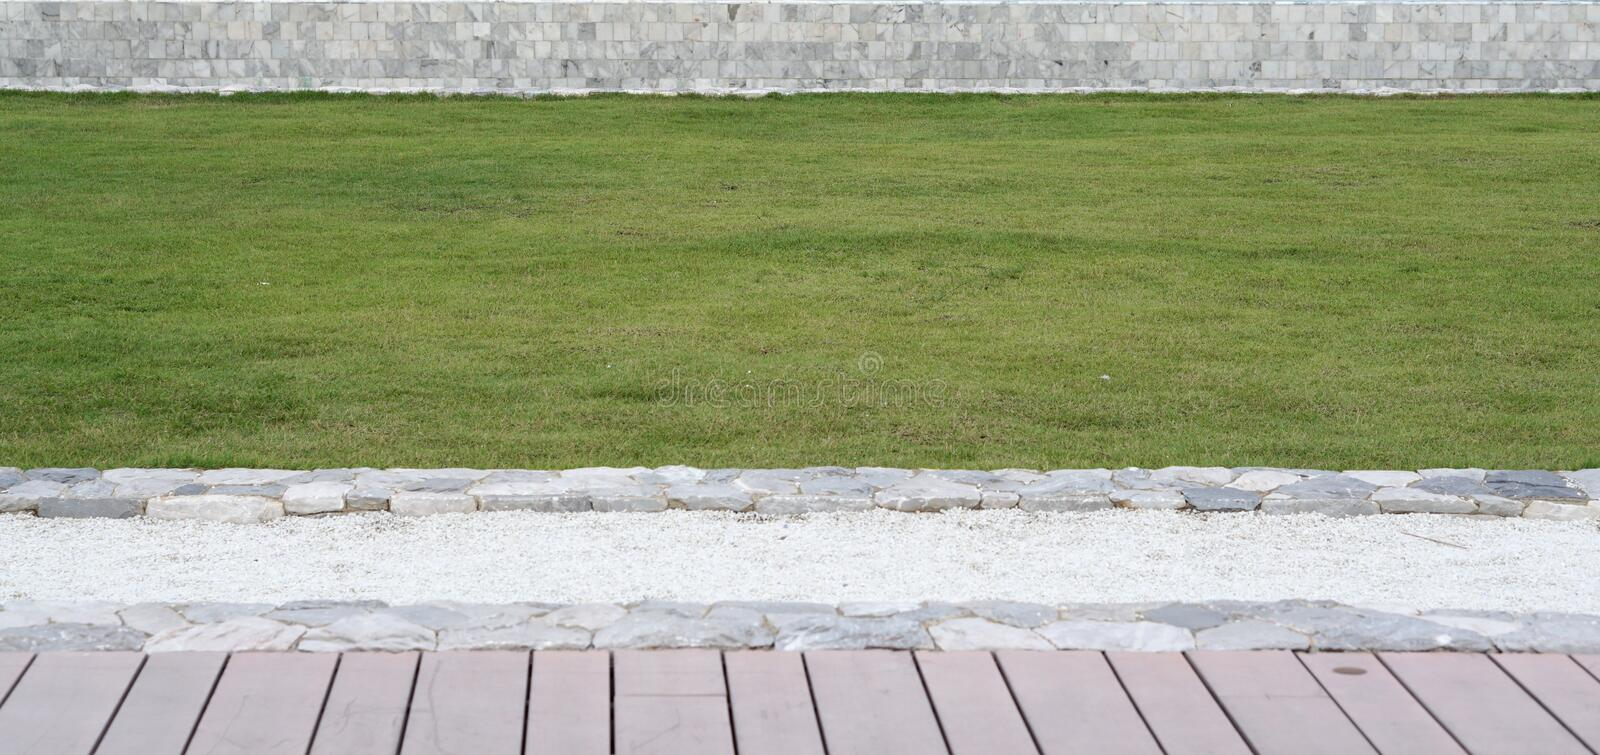 Download Elevation Of The Timber Terrace, Green Grass Lawn And Low Height  Stock Image